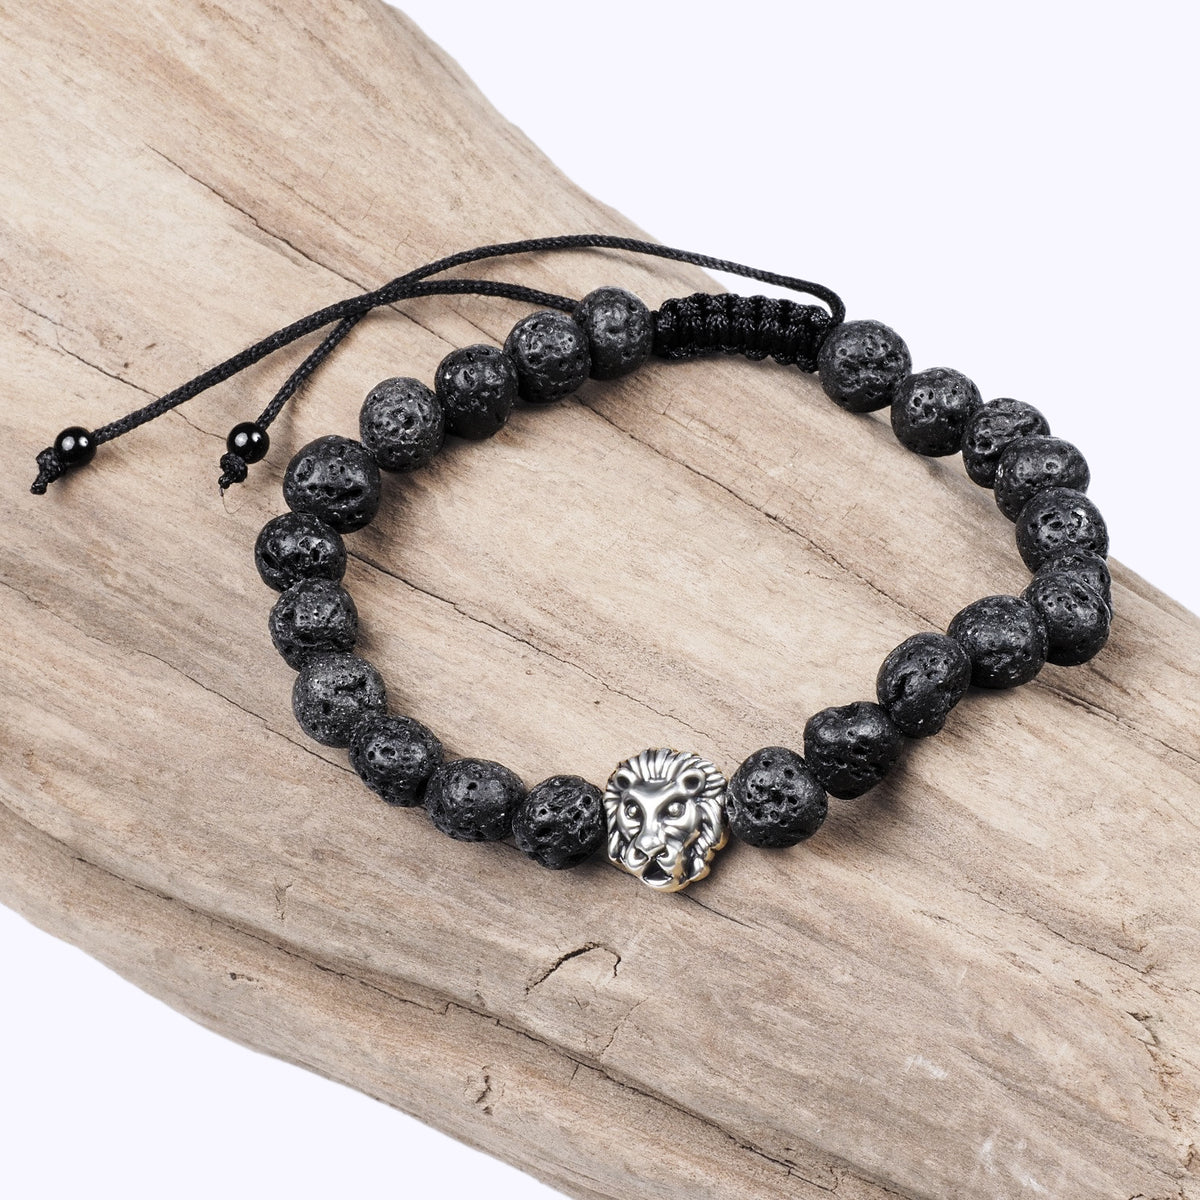 Black Adjustable Lava Bracelet with a Silver Lion Head Charm